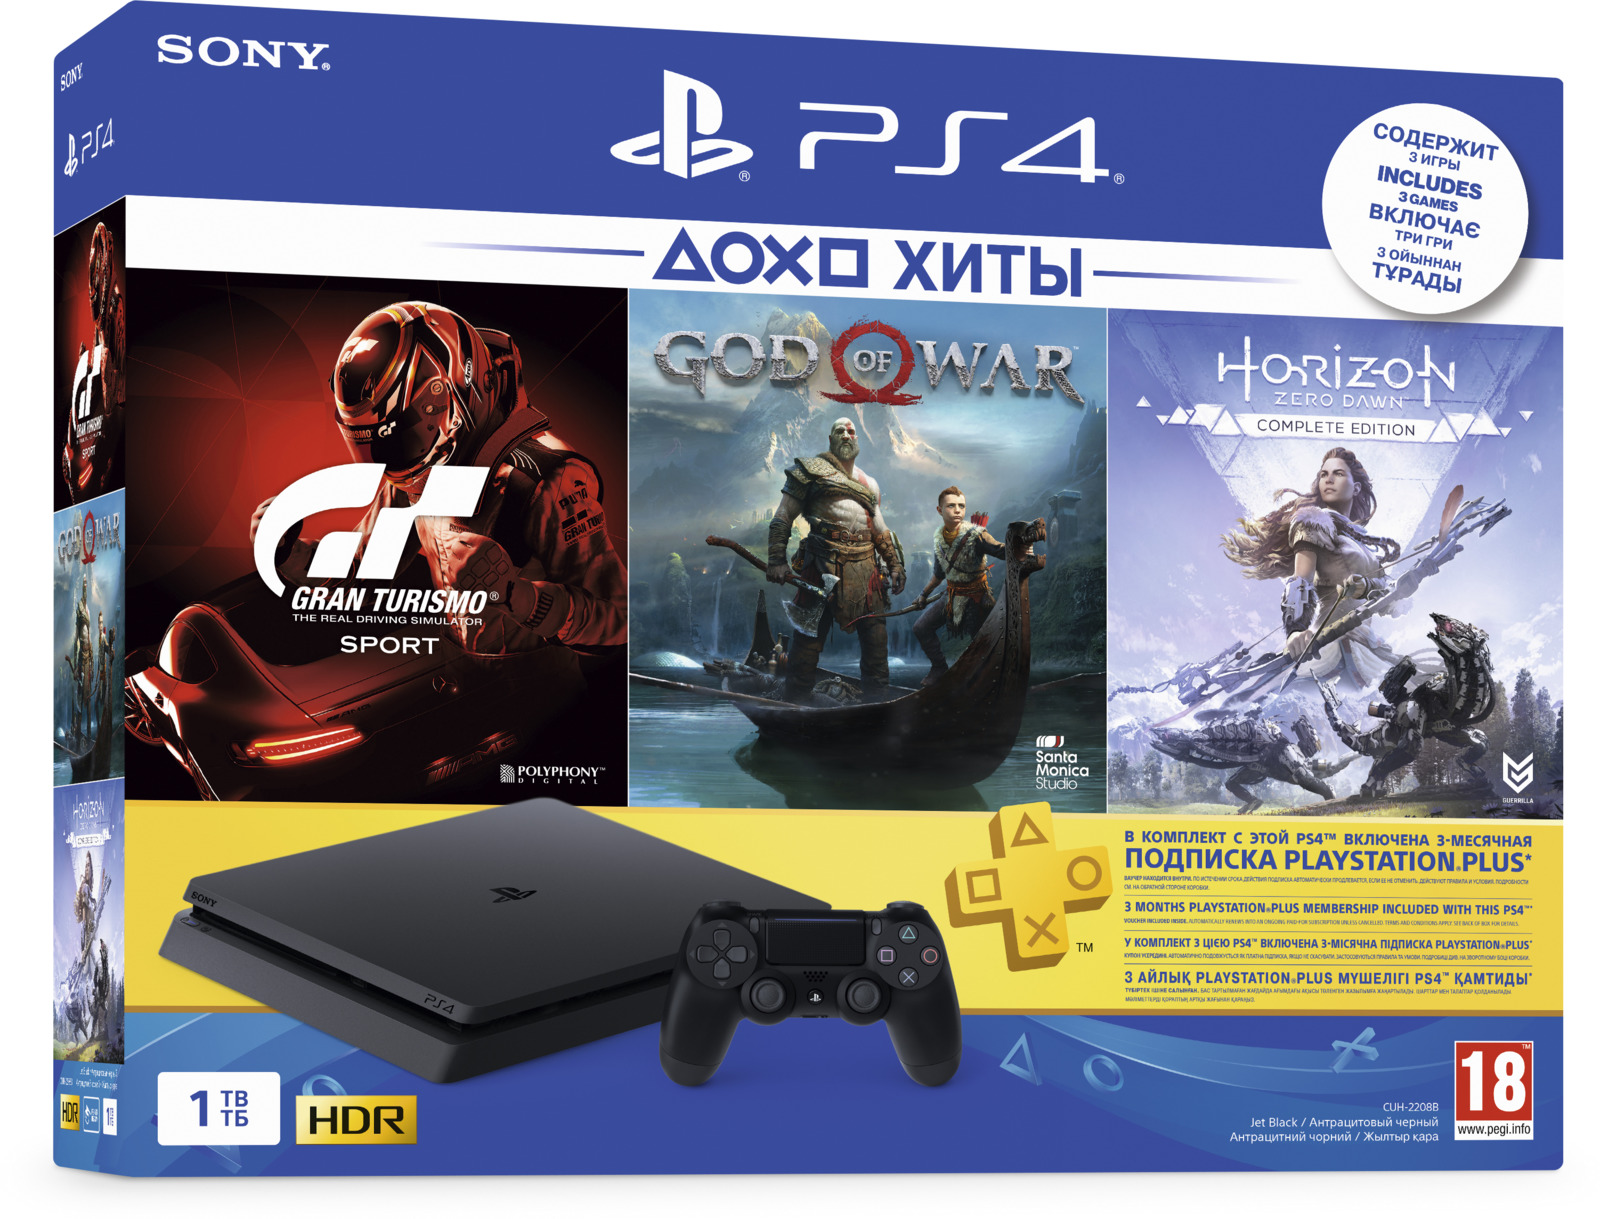 Игровая приставка Sony PlayStation 4 Slim (1TB) + Horizon Zero Dawn CE + Gran Turismo Sport + God of War + PS Plus 3 месяца